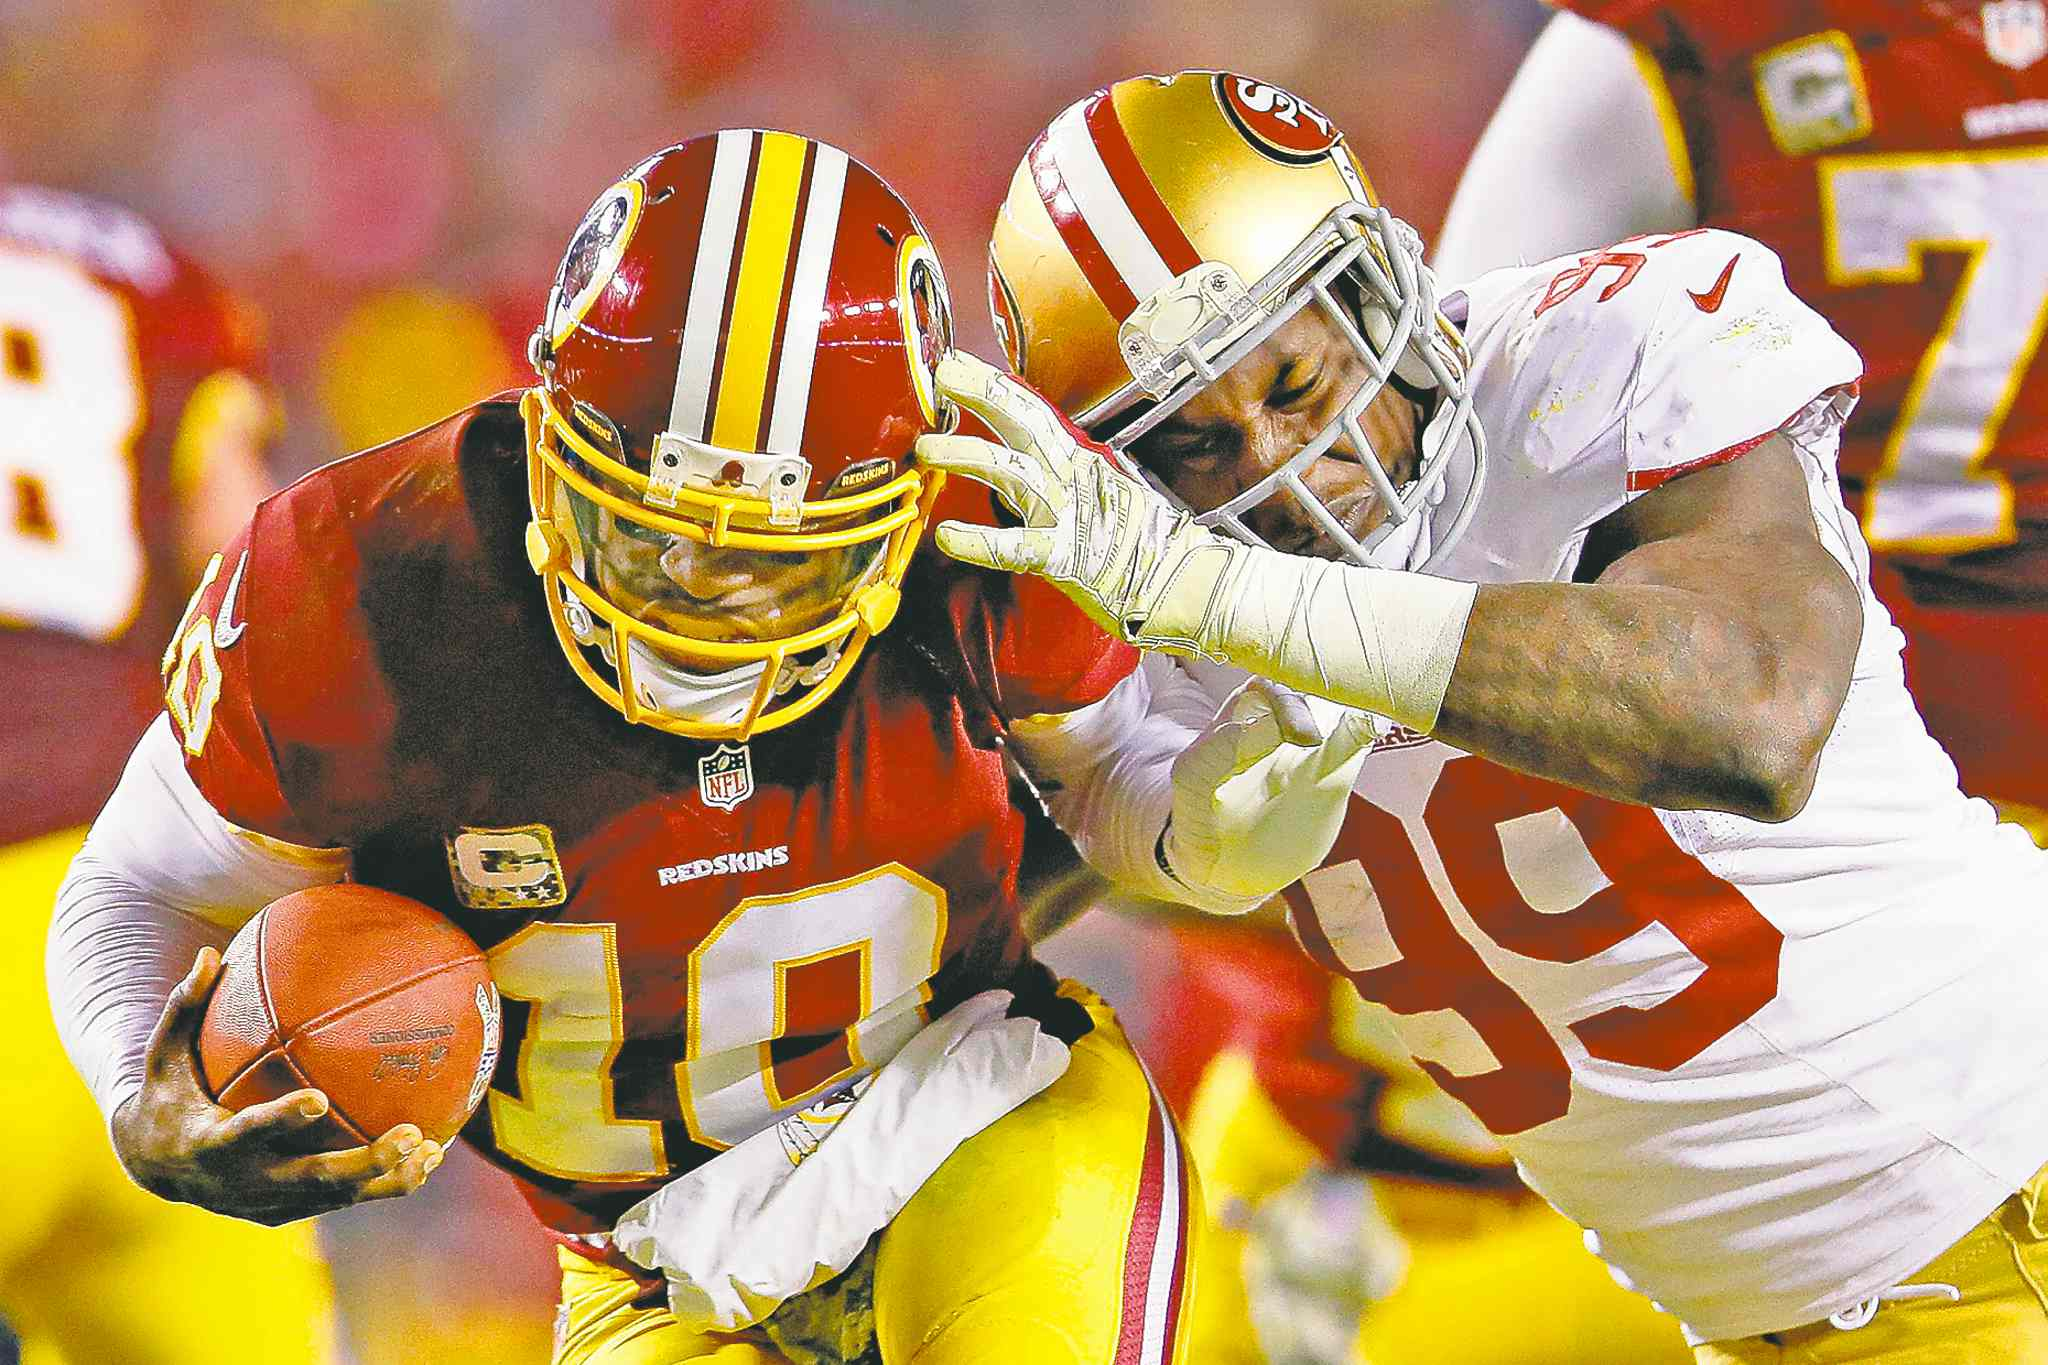 Redskins quarterback Robert Griffin III is sacked by San Francisco linebacker Aldon Smith during the second half of the 27-6 Niners triumph Monday night.